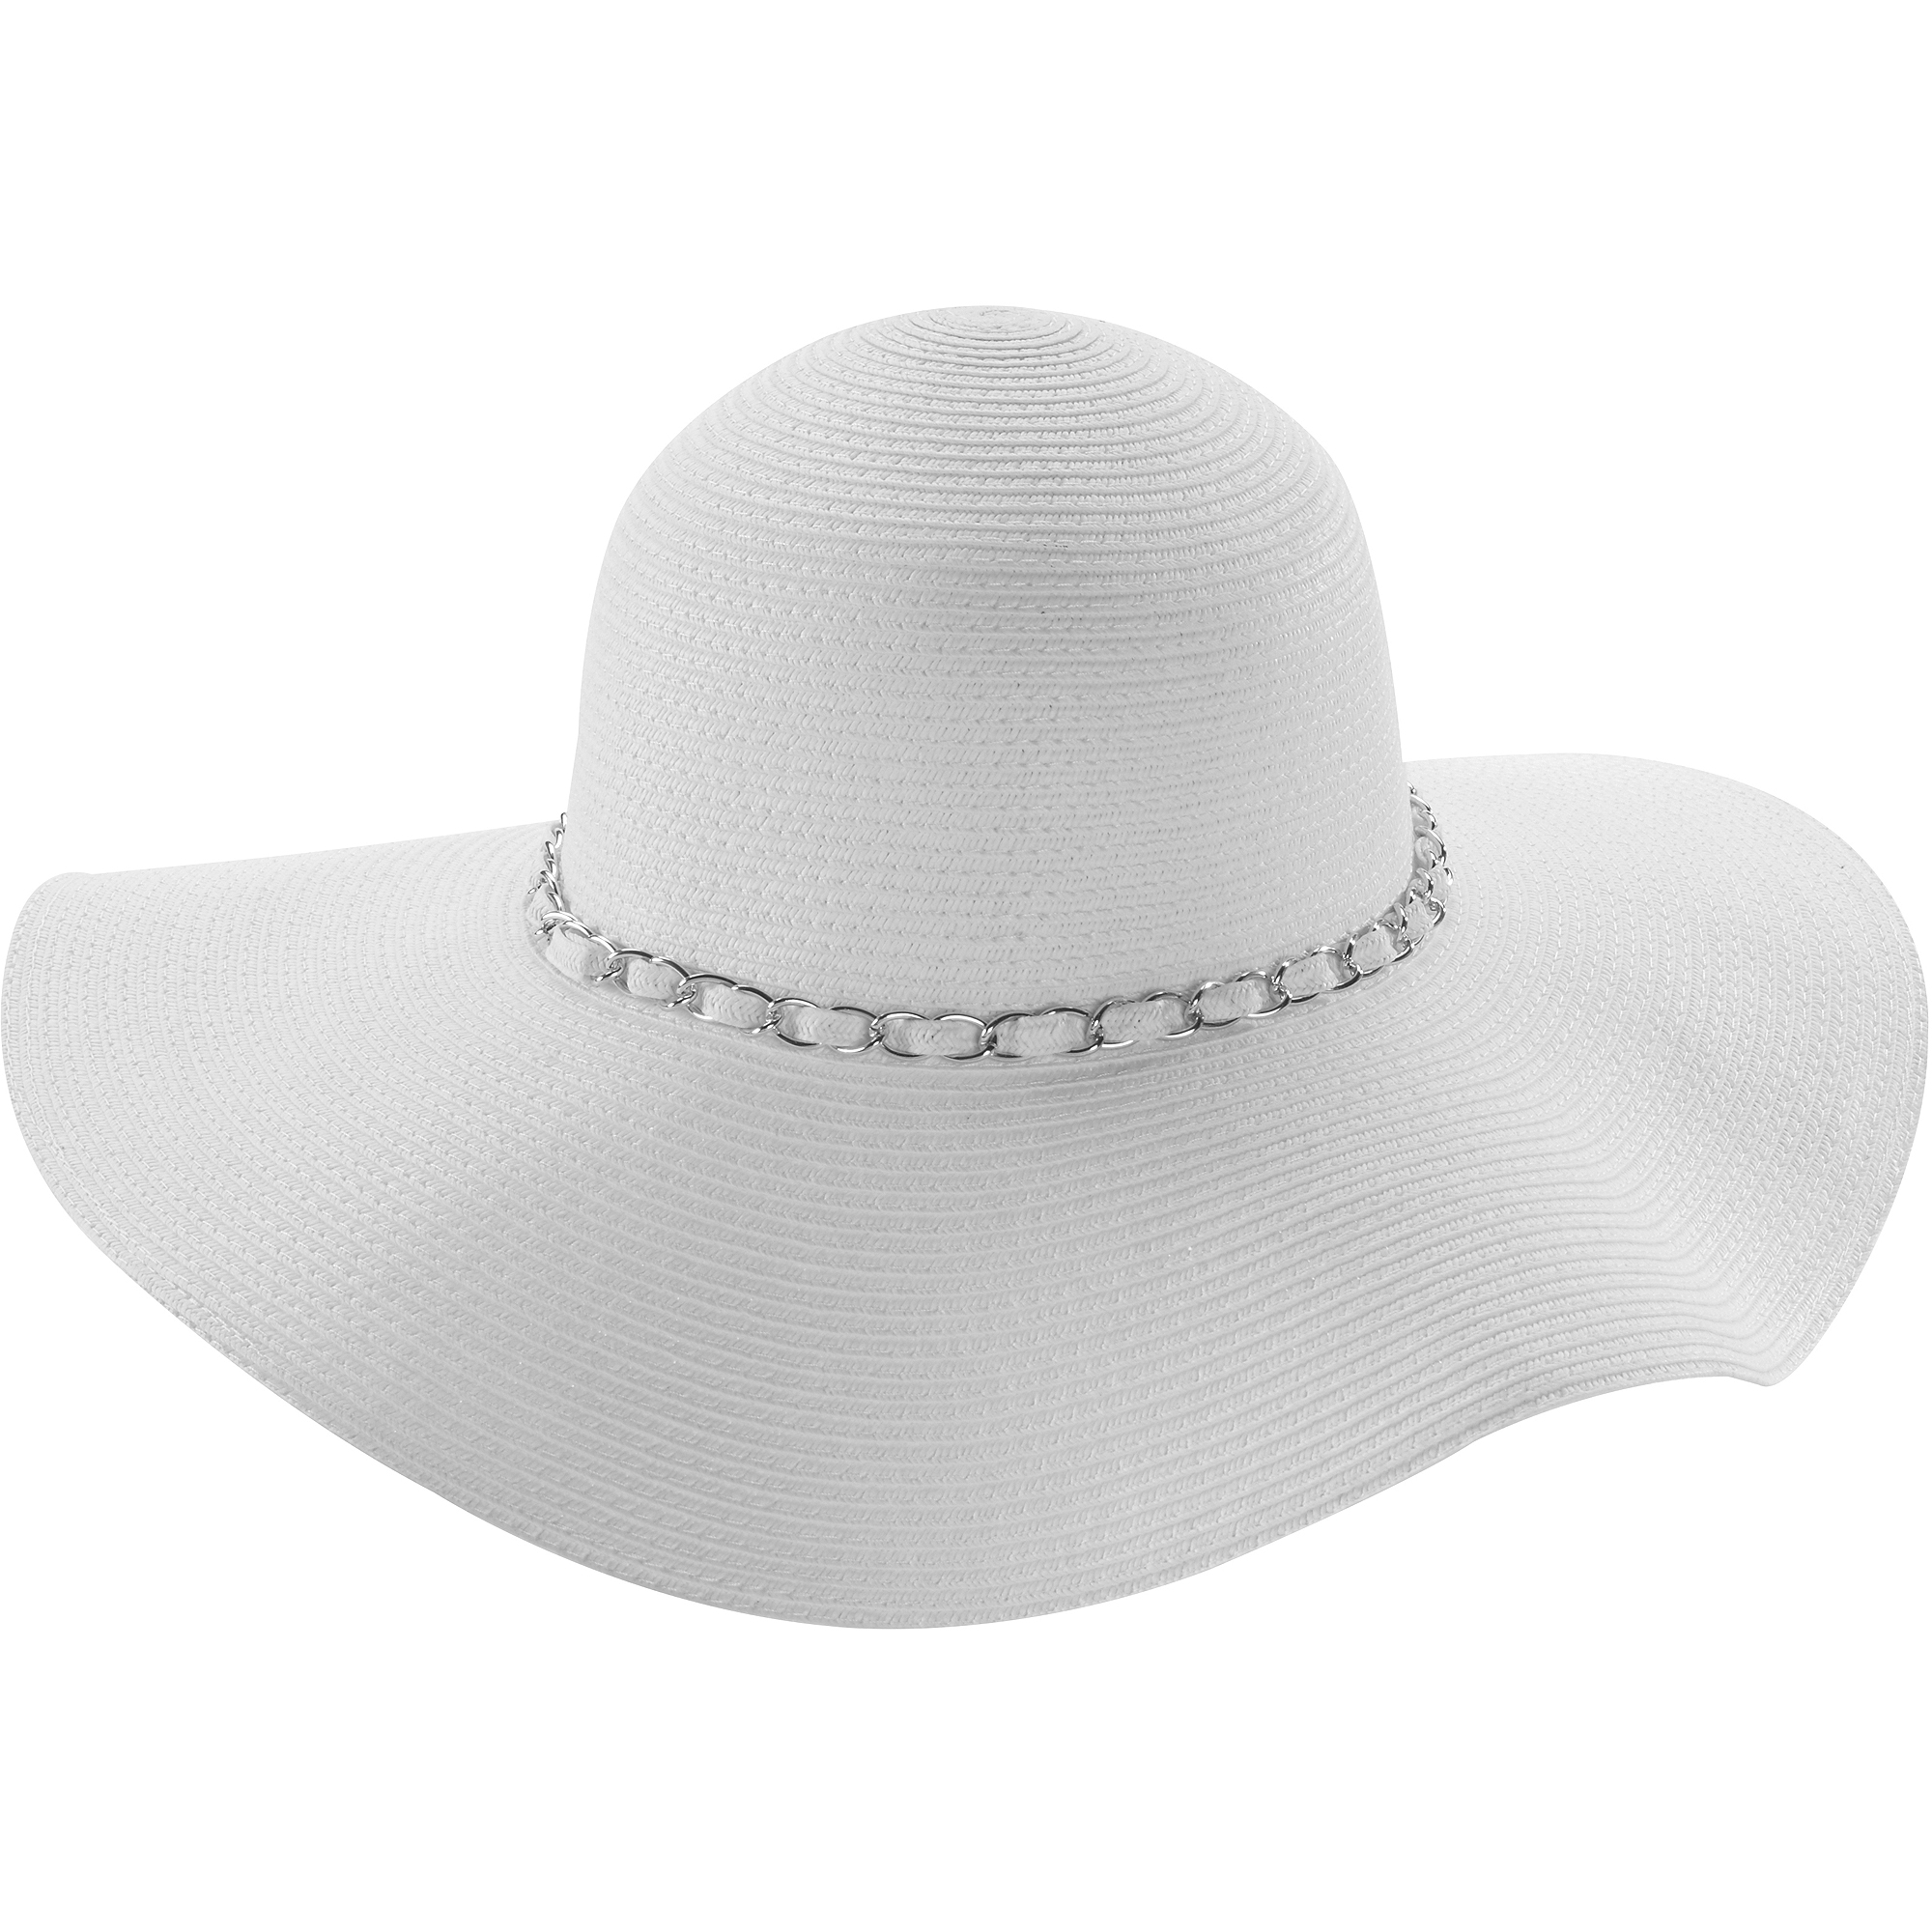 Women's Saffy Wide Brim Straw Floppy Hat